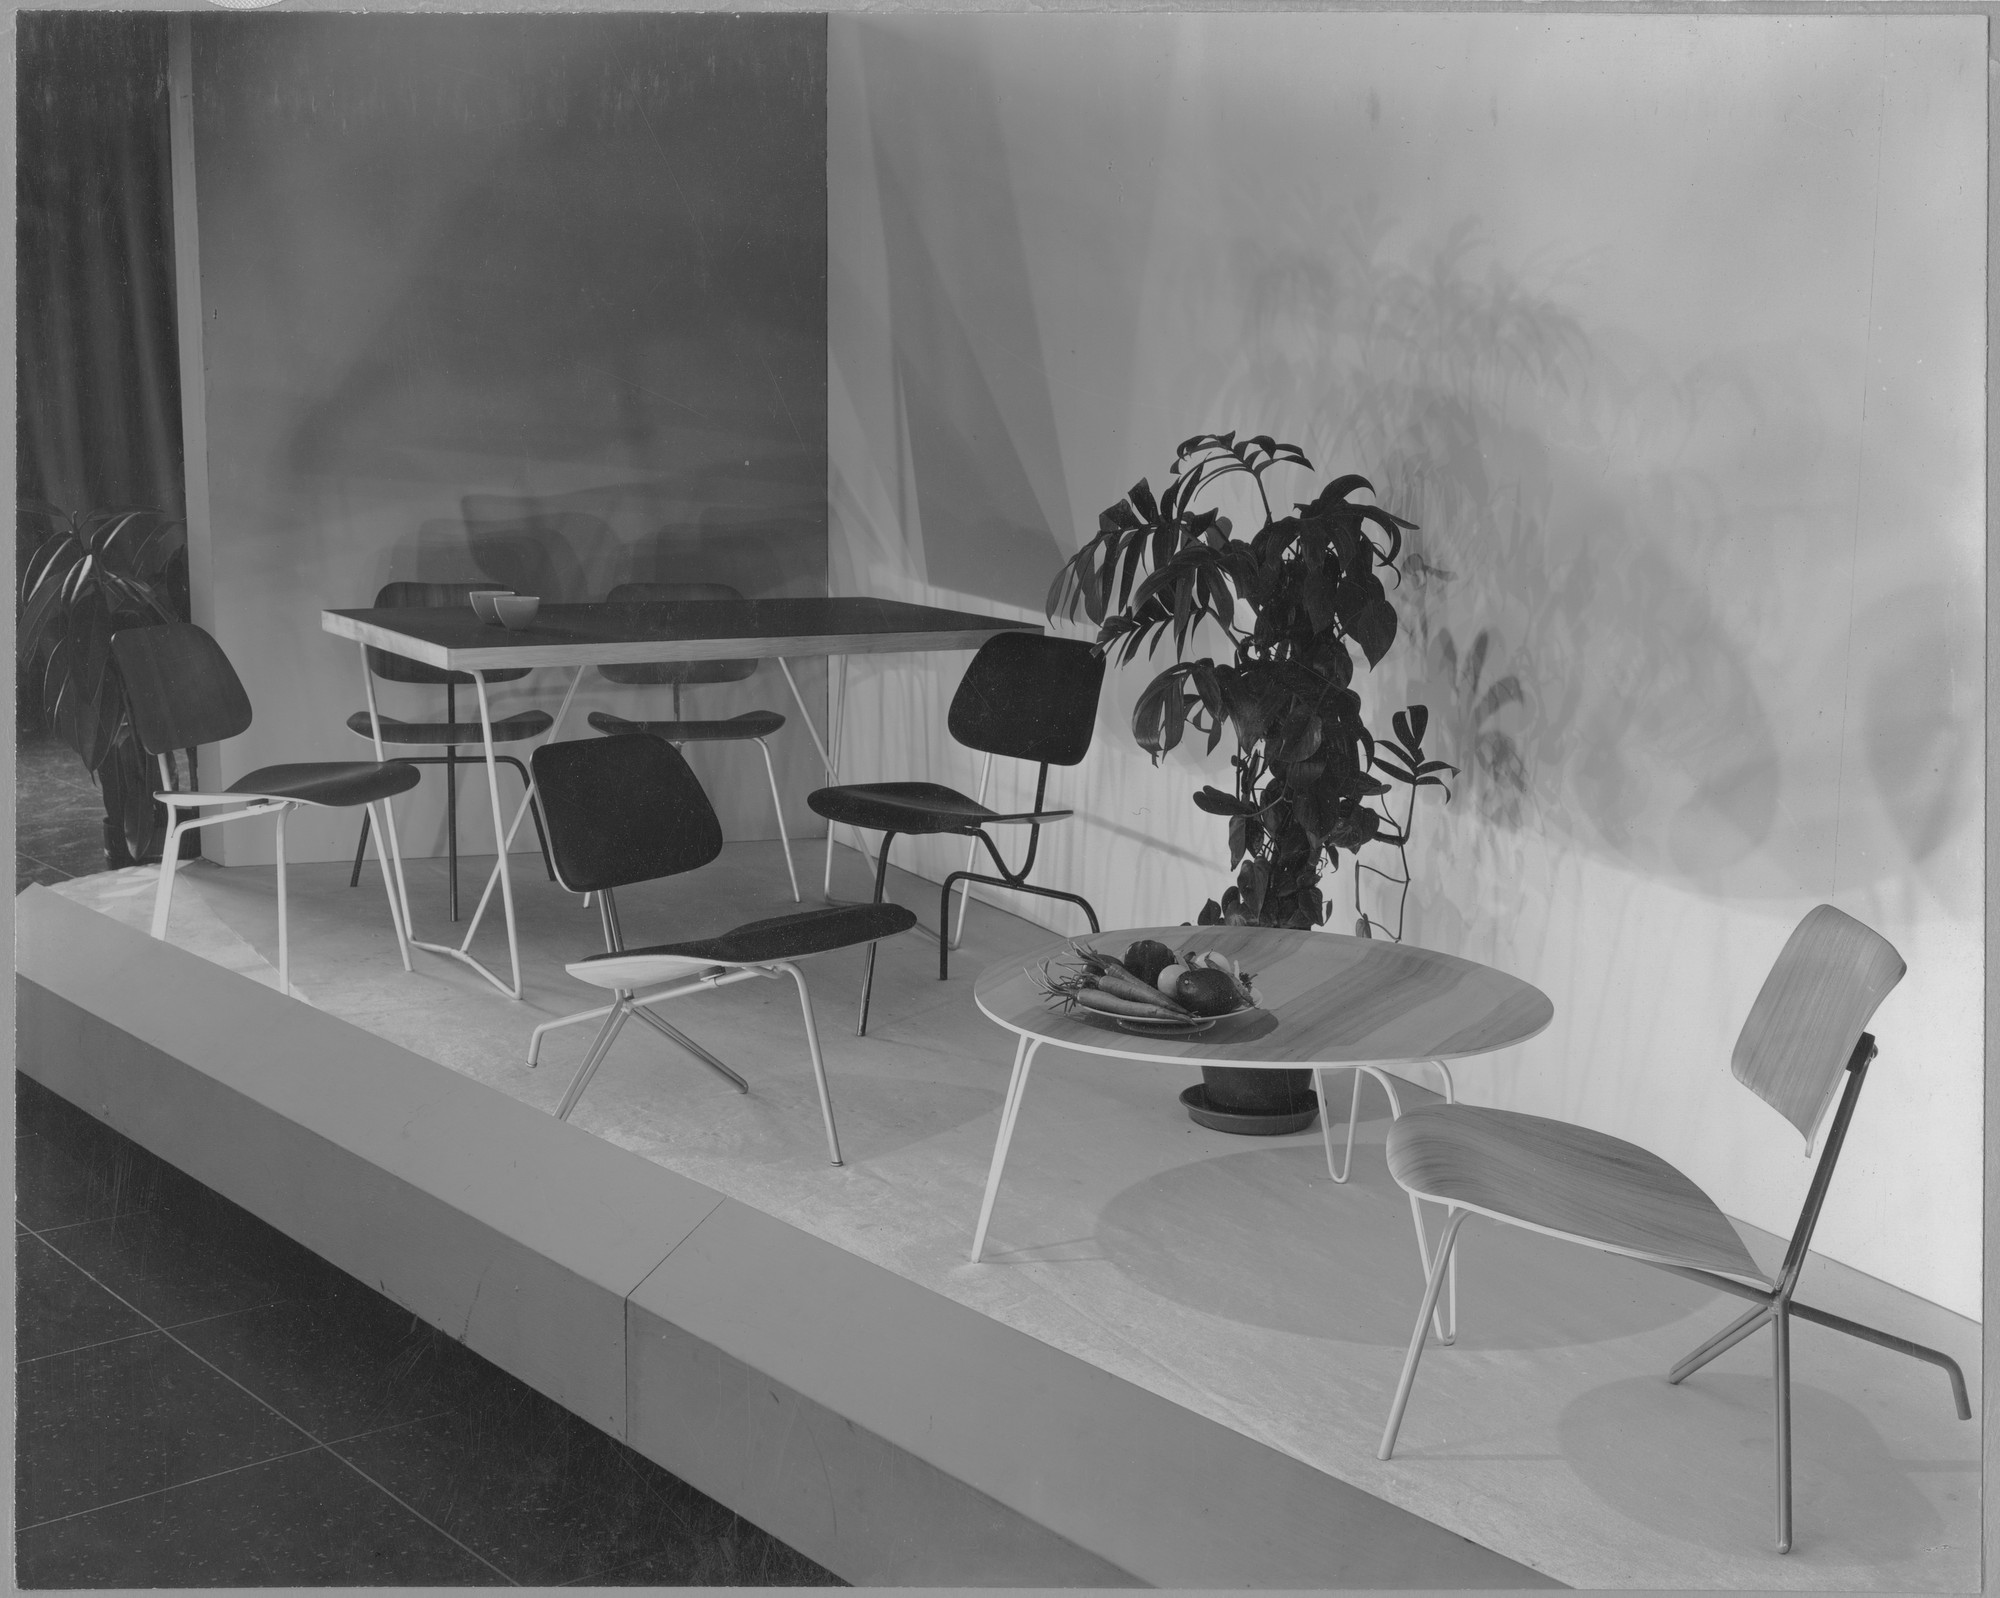 "Installation view of the exhibition, ""New Furniture Designed by Charles Eames."" March 12, 1946–March 31, 1946 (1st section); March 12, 1946–April 14, 1946 (2nd section). Photographic Archive. The Museum of Modern Art Archives, New York. IN314.1. Photograph by Soichi Sunami."